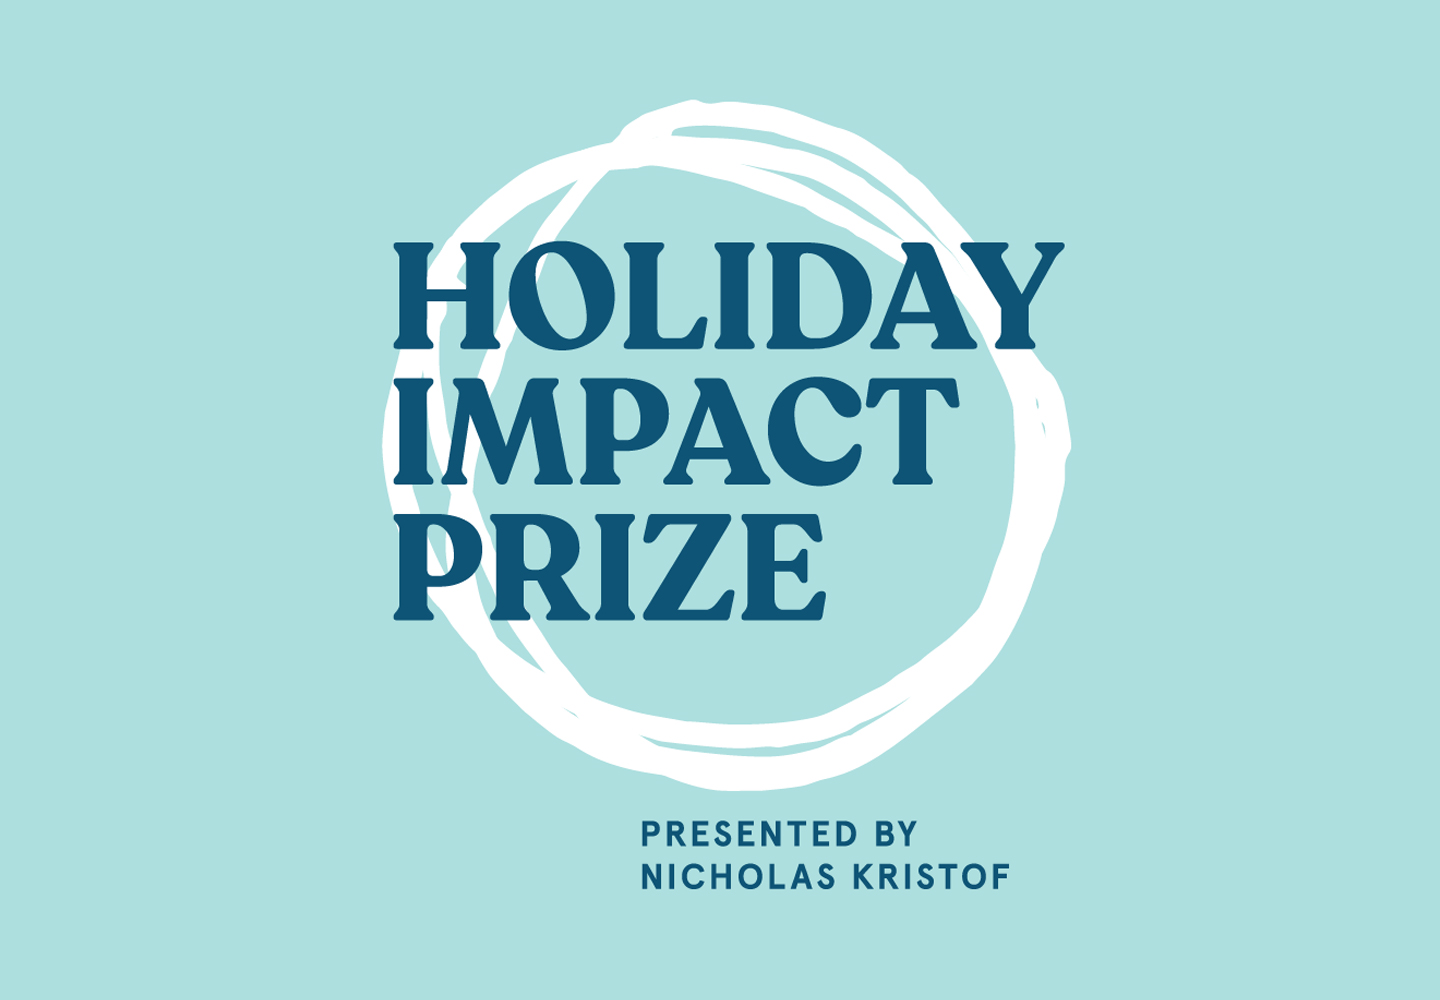 Holiday Impact Prize